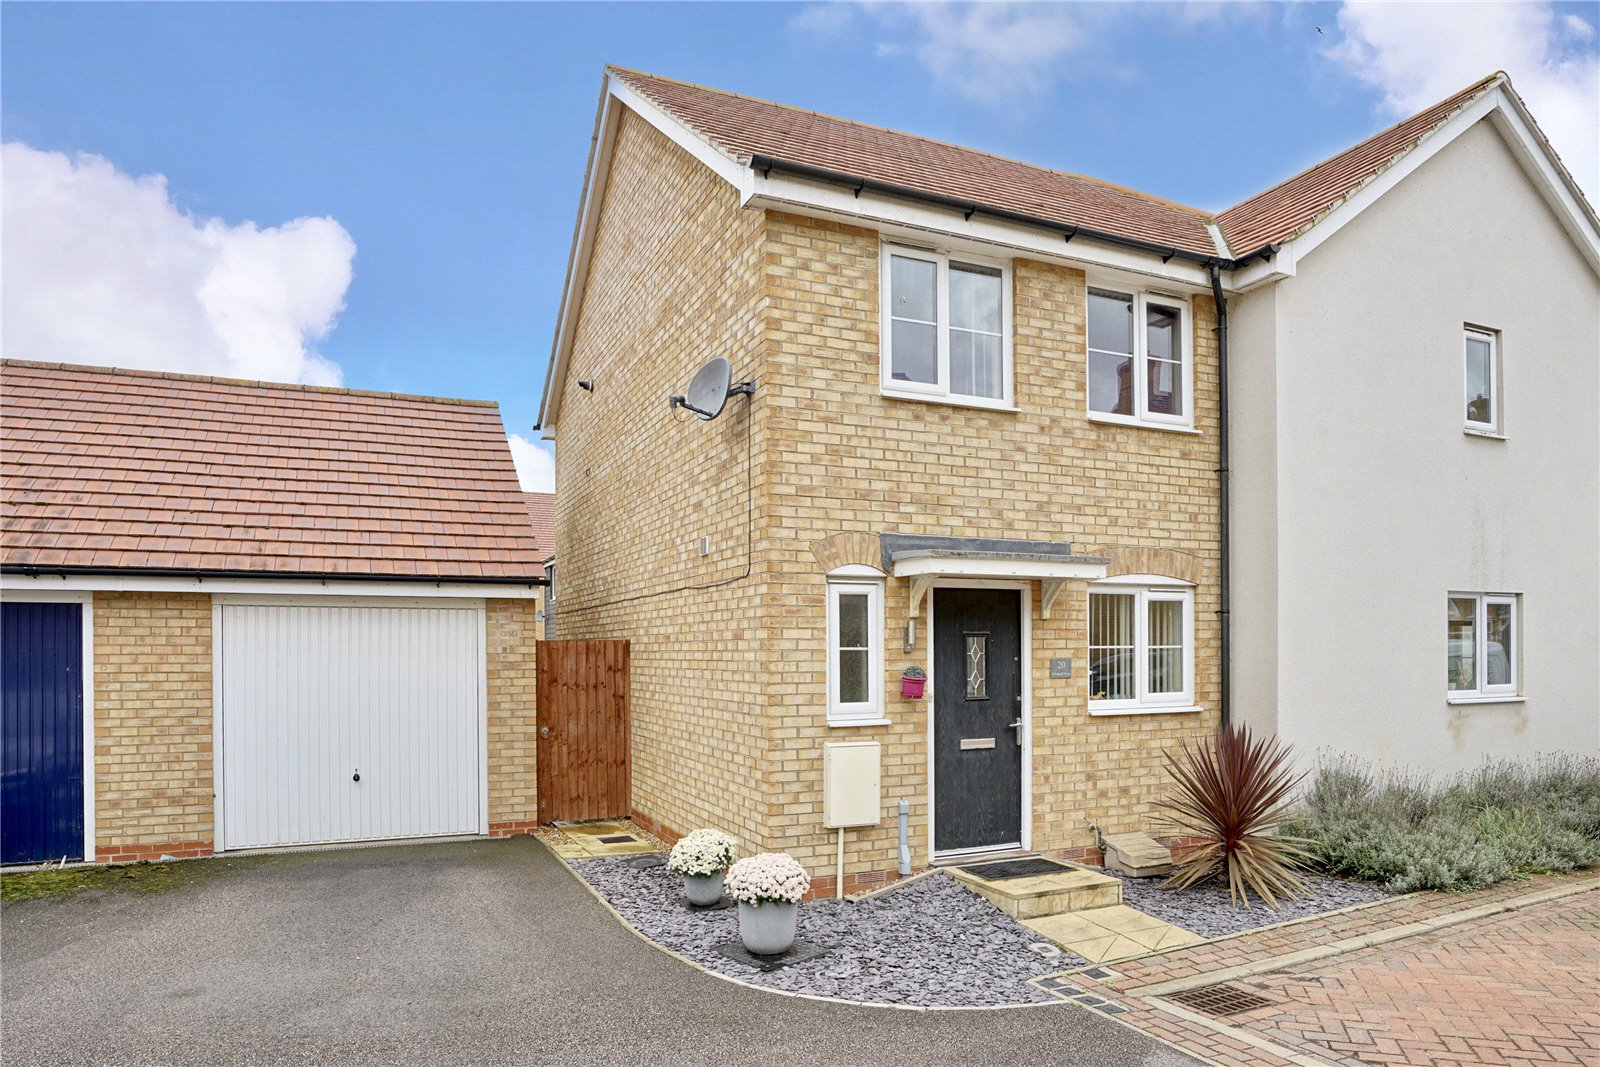 2 bed house for sale in Papworth Everard, CB23 3AE, CB23